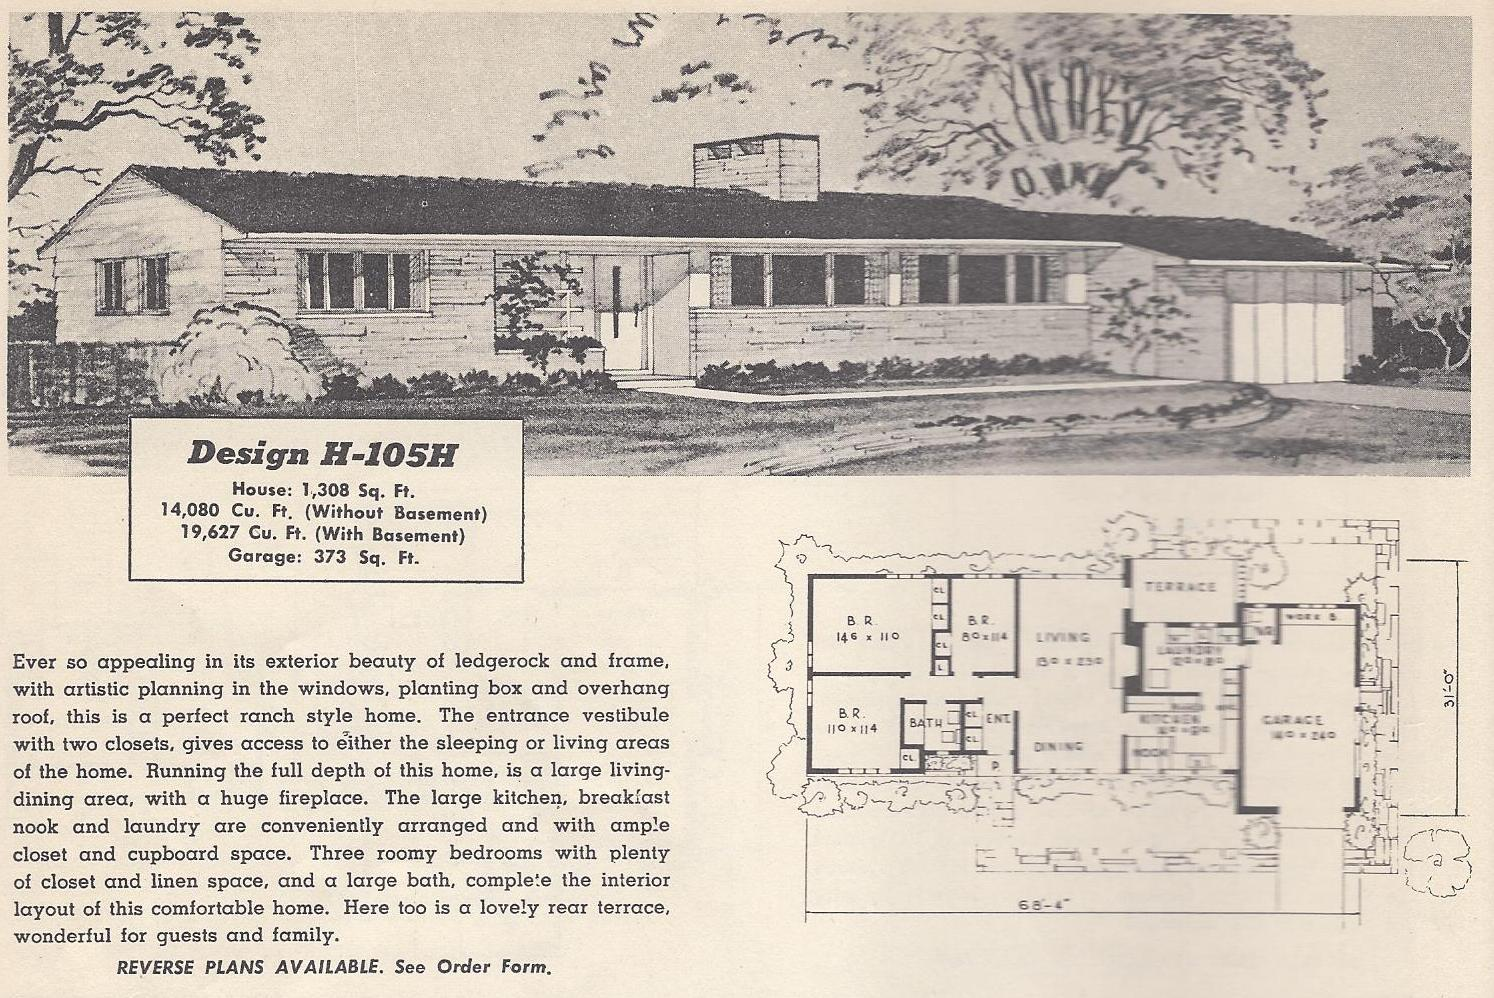 Vintage house plans 105h antique alter ego for 1950s house plans